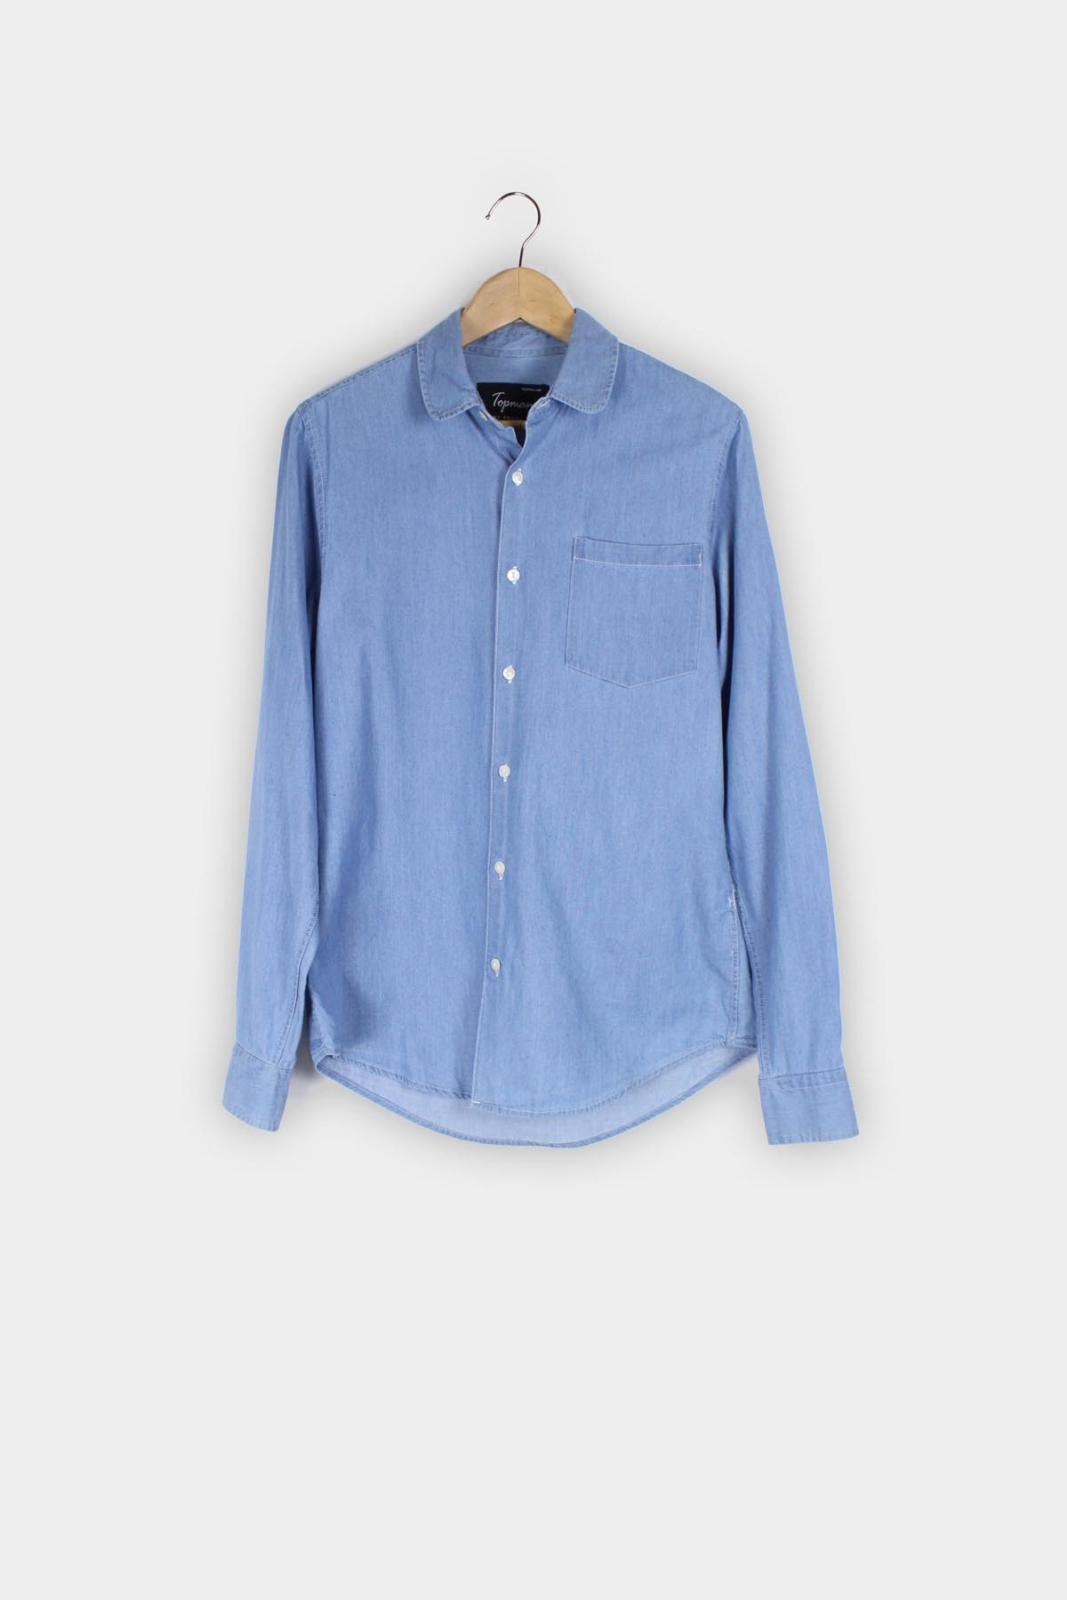 Second-hand Clothing - Sale, Second-Hand Clothing, Men, Tops & Shirts